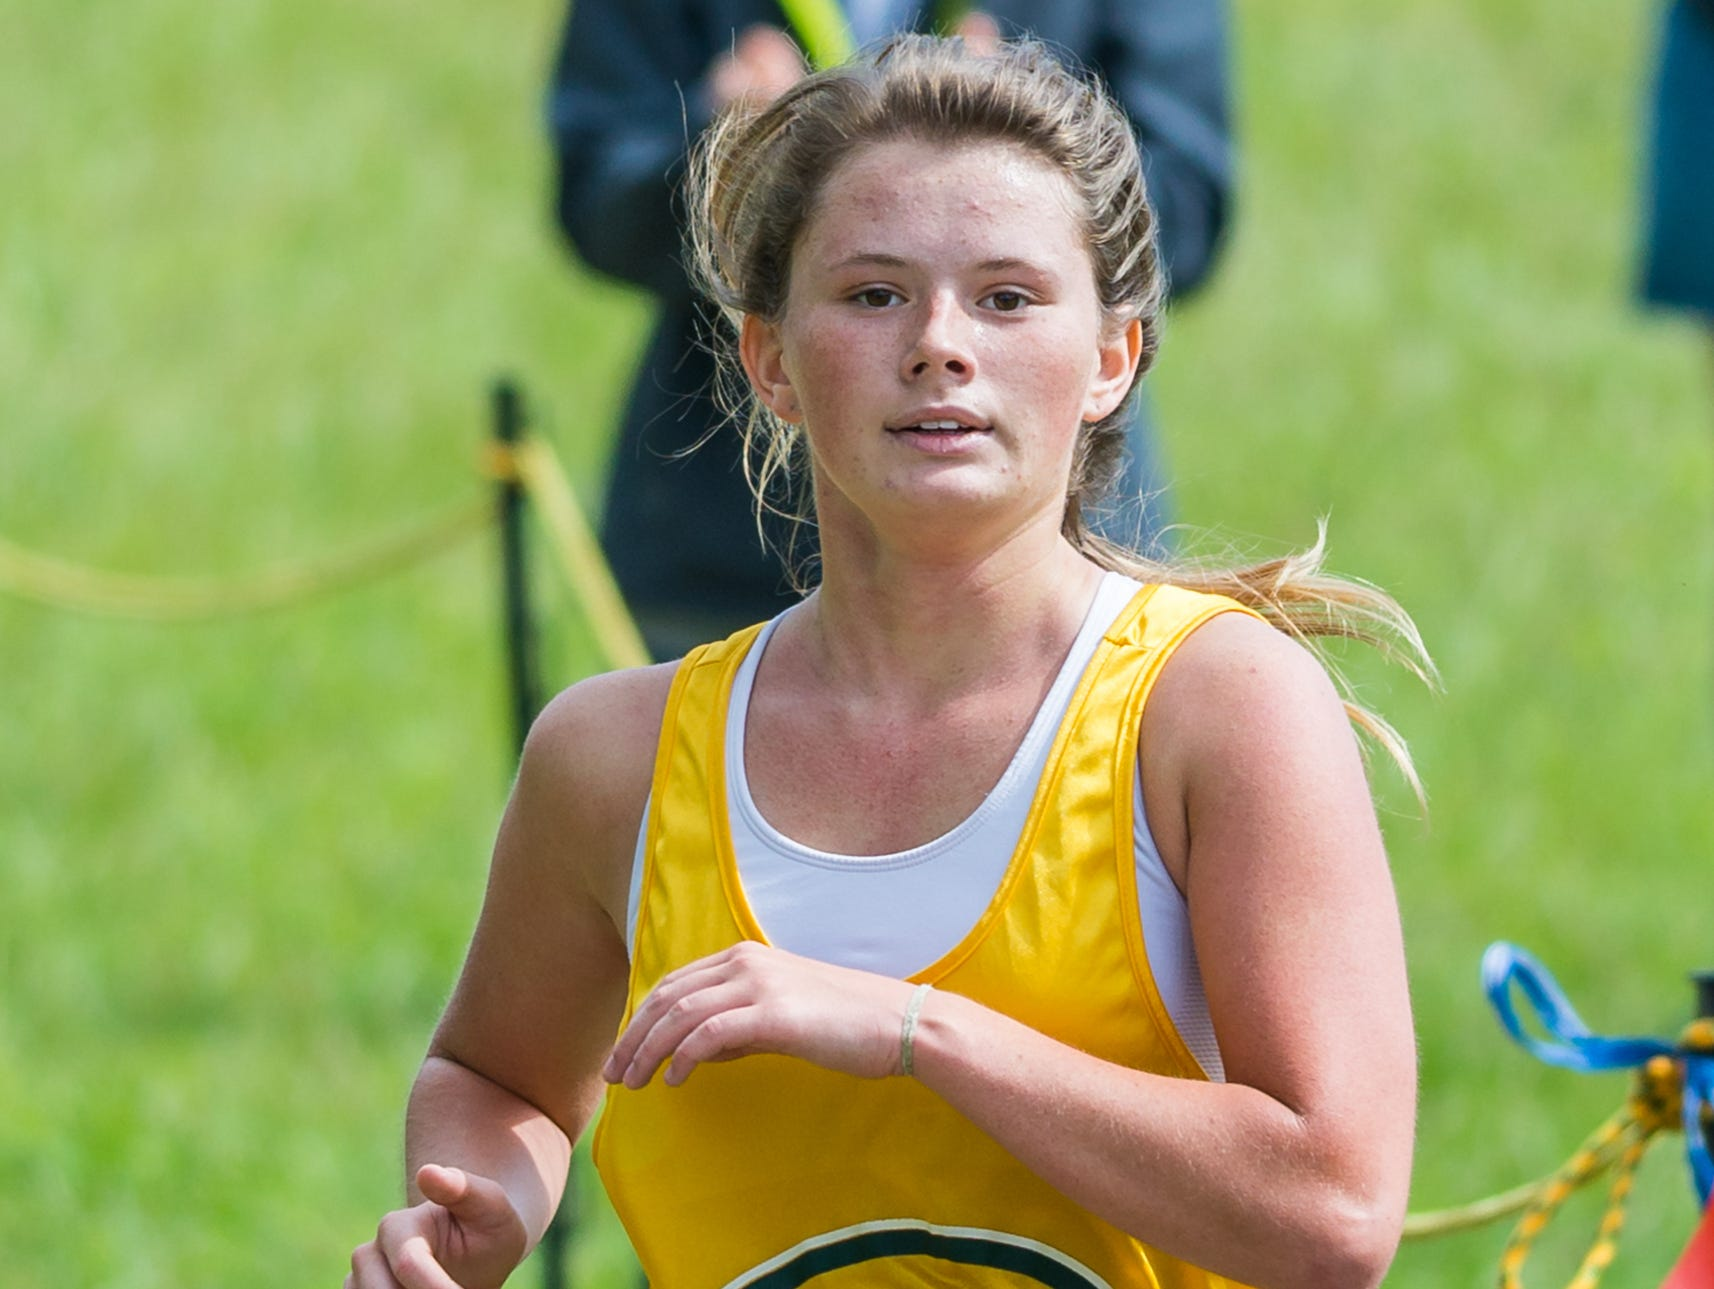 Gallatin High senior Savannah Davis finished 27th in Saturday's Beech Invitational cross country meet.